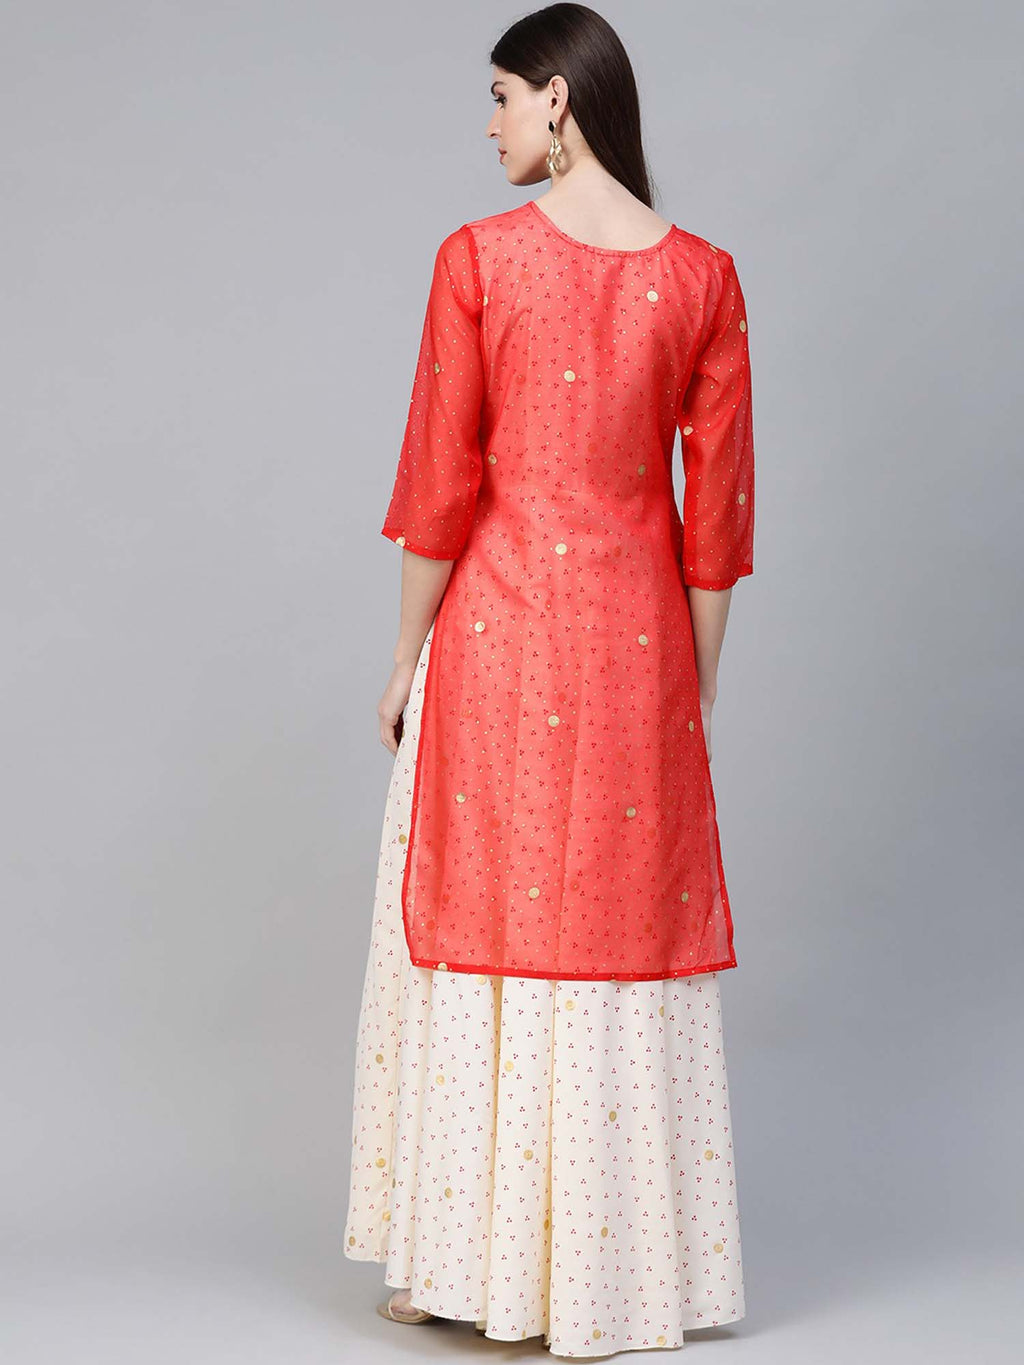 Cream and Peach Straight Kurta with Attached Gown - Riviera Closet